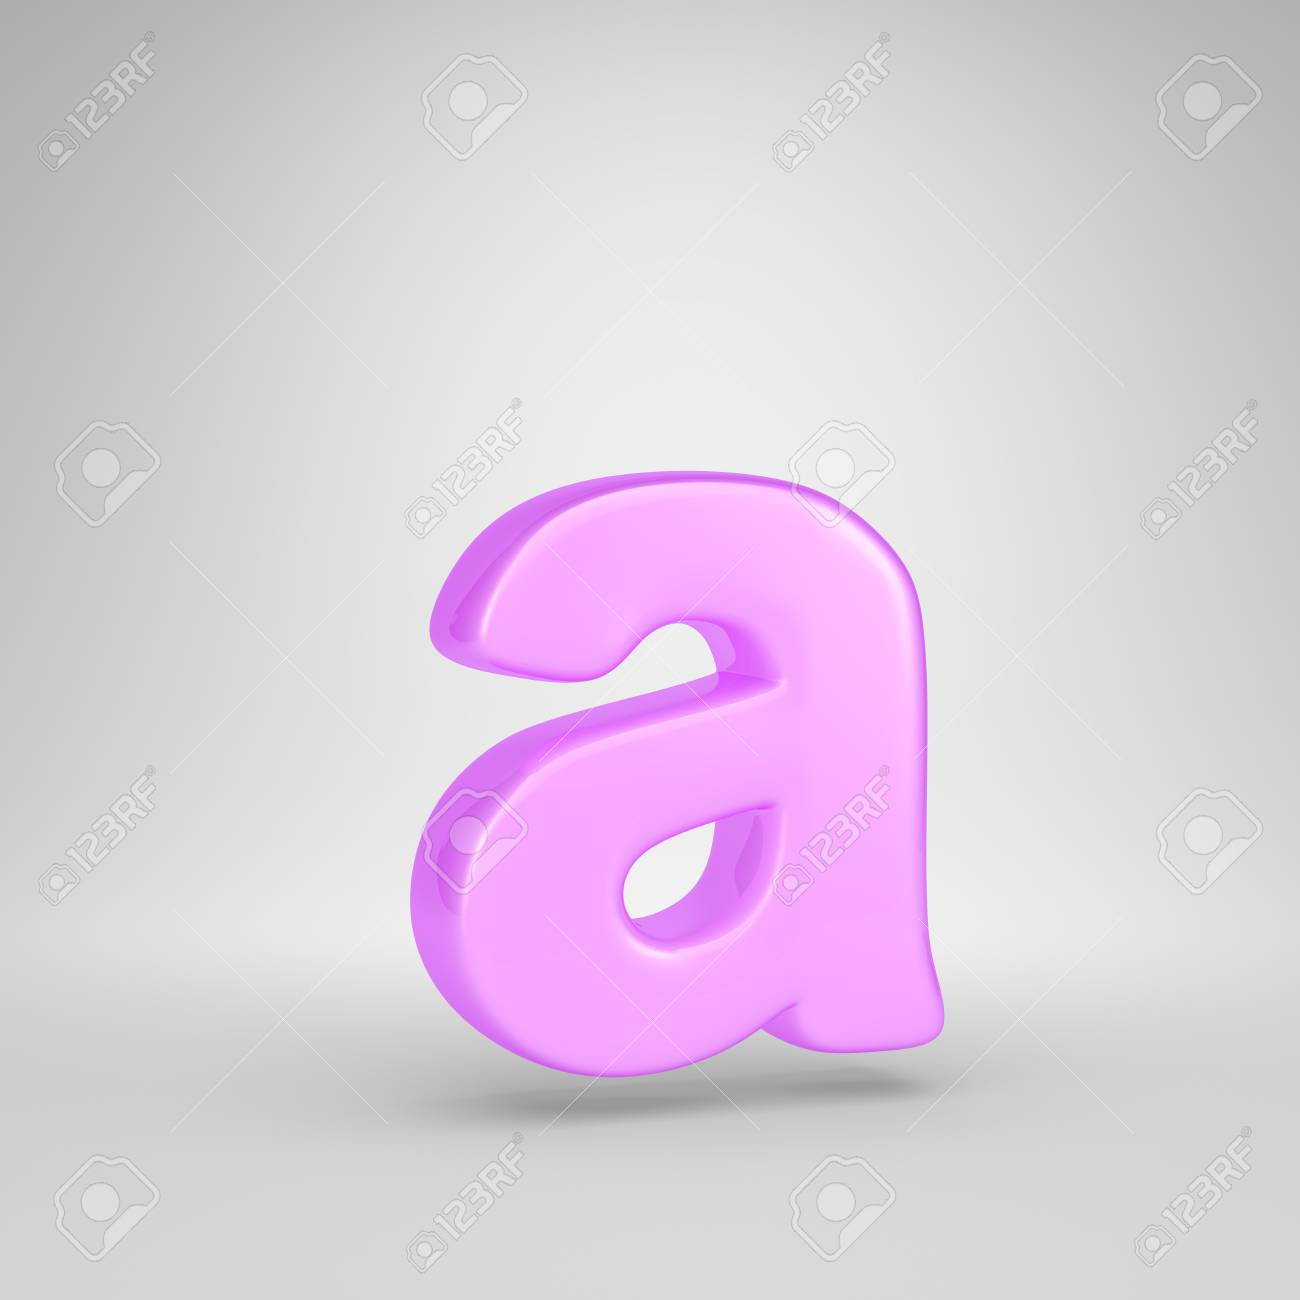 Glossy Pink Bubble Gum Letter A Lowercase 3d Render Pink Font Stock Photo Picture And Royalty Free Image Image 112171890